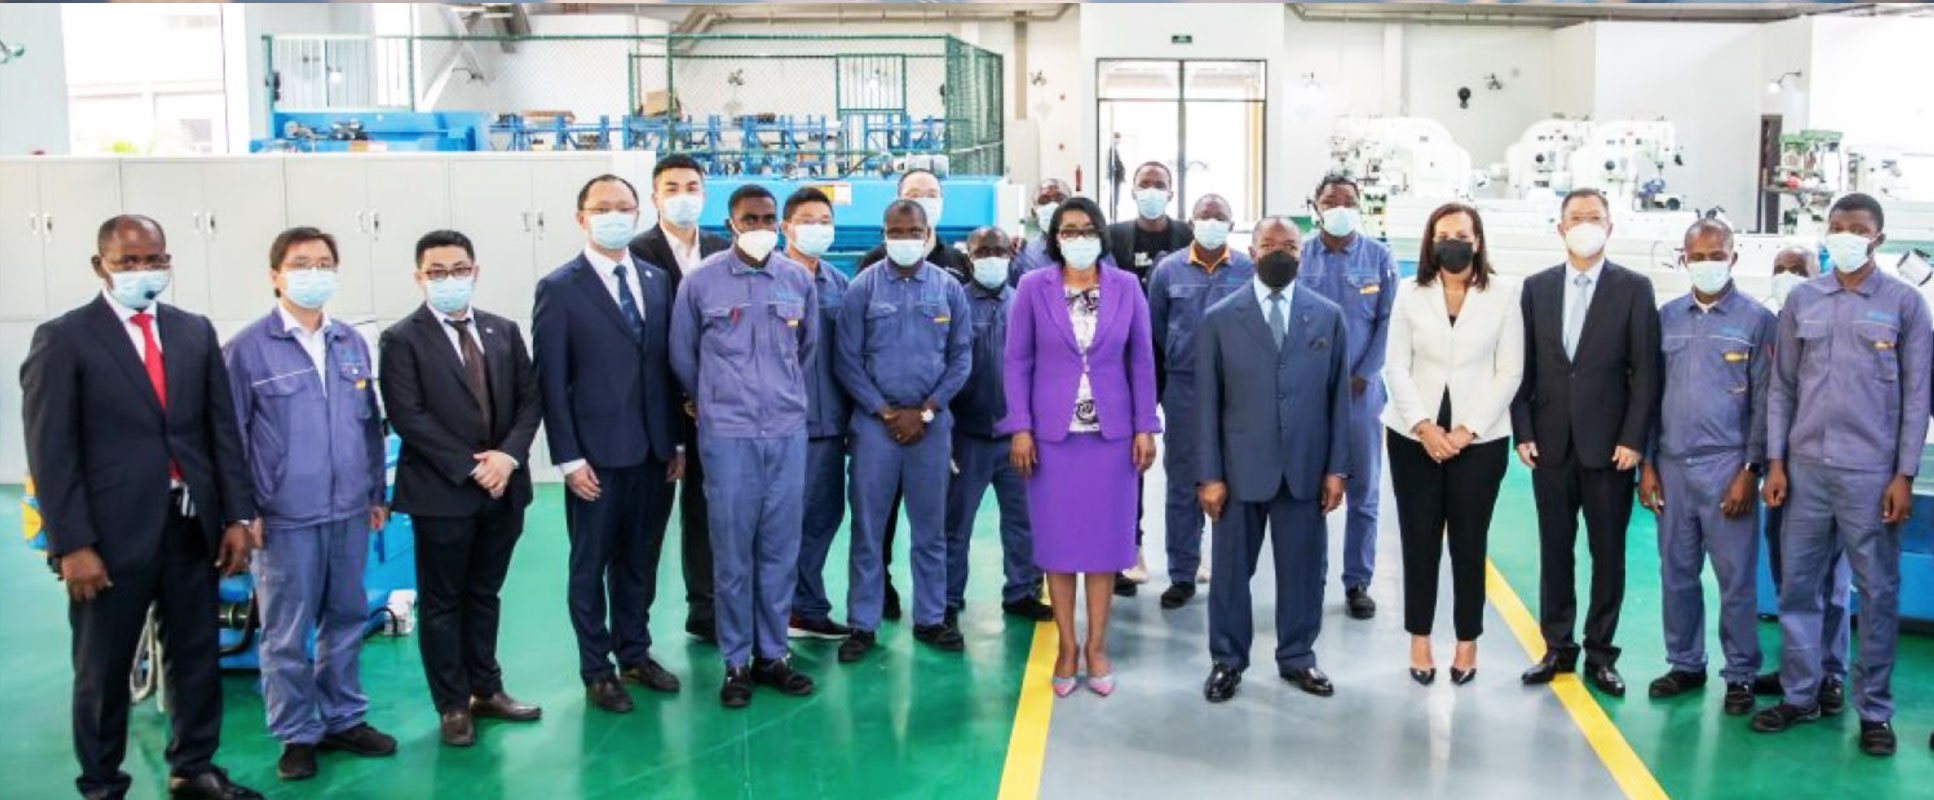 Gabon launches technical training hub to revolutionise skills for economic diversification